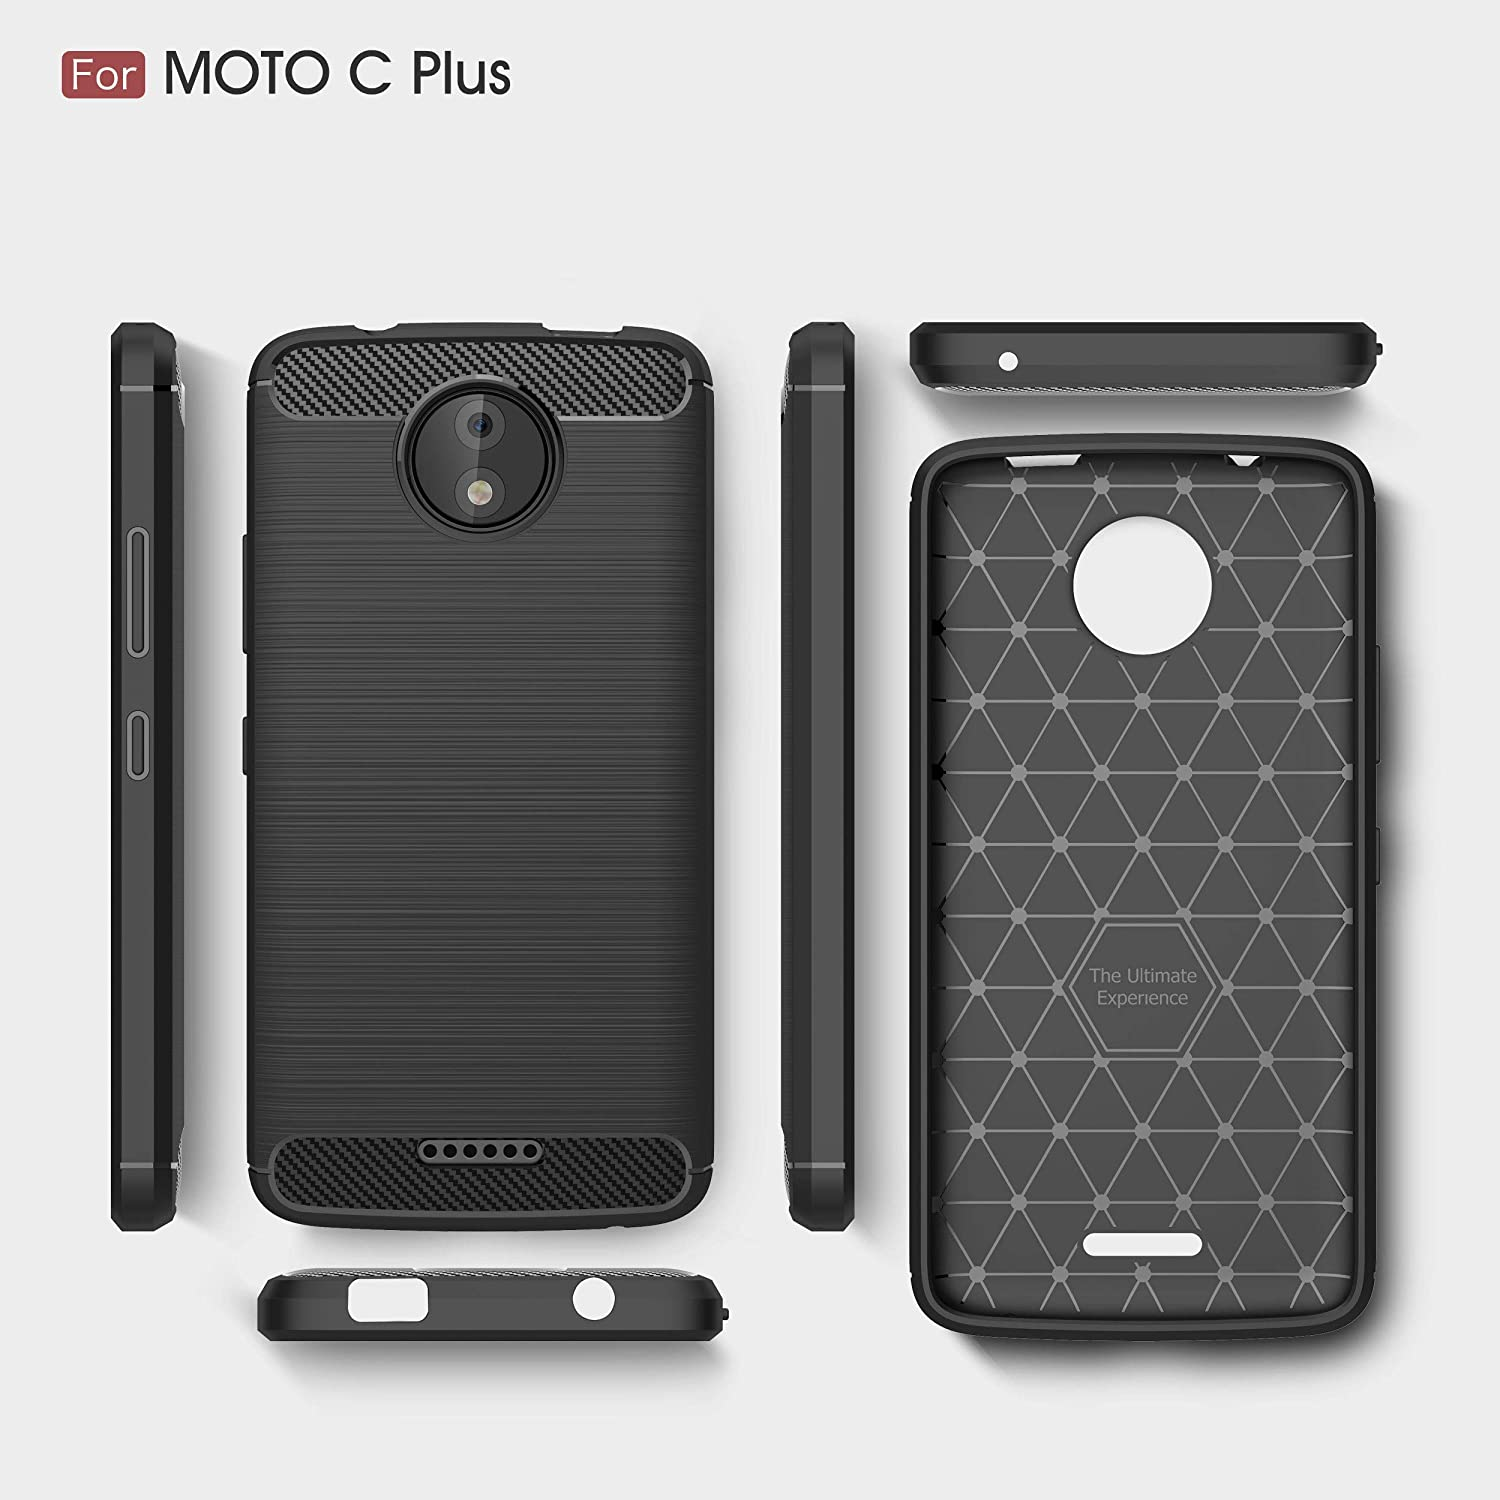 Amazon.com: Motorola Moto C Plus Case, SsHhUu Carbon Fiber ...